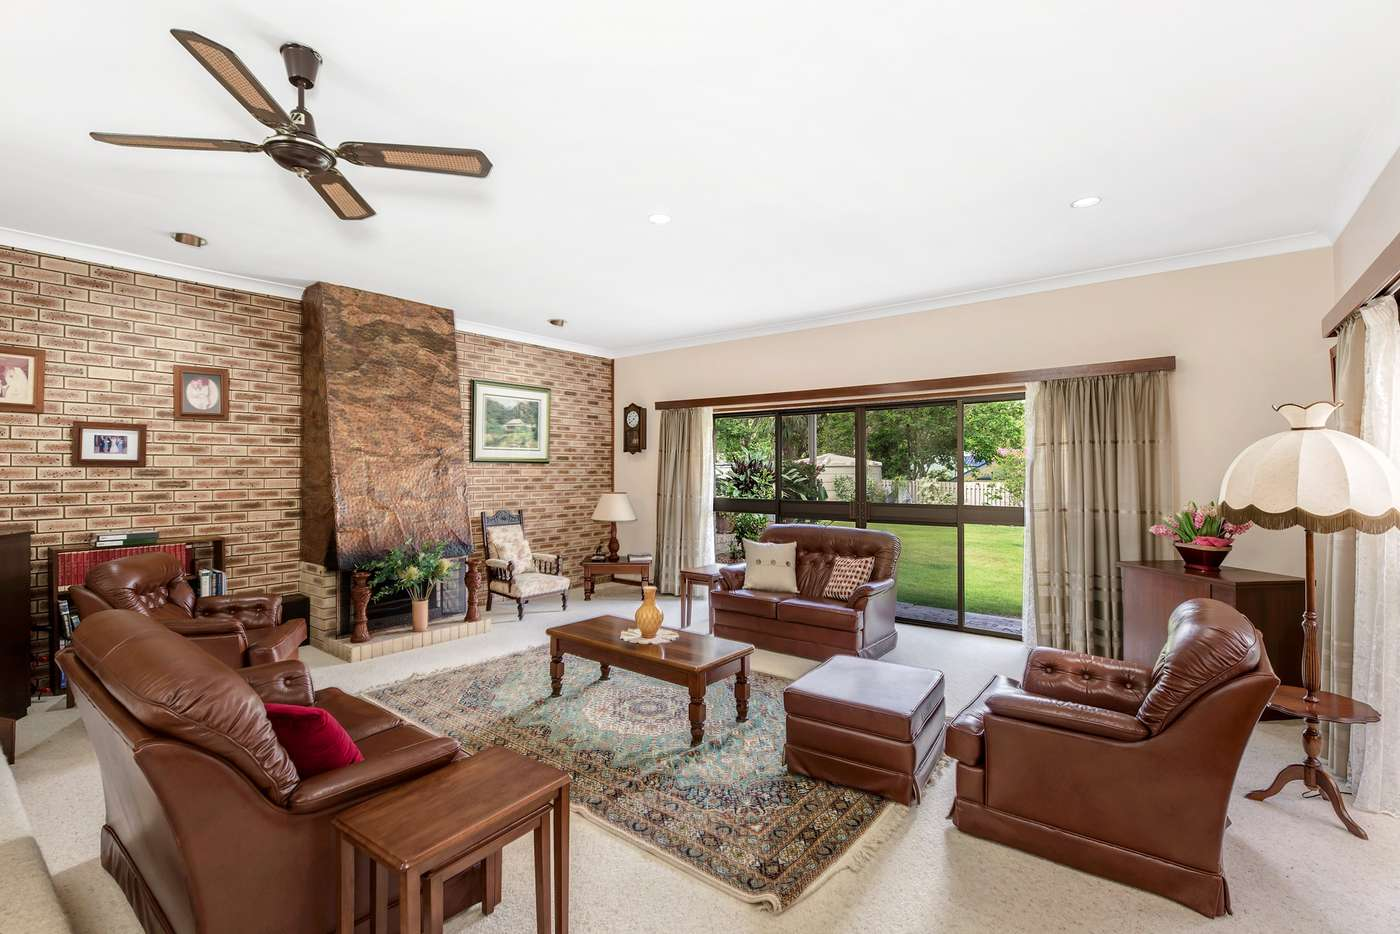 Seventh view of Homely house listing, 21 Limosa Street, Bellbowrie QLD 4070